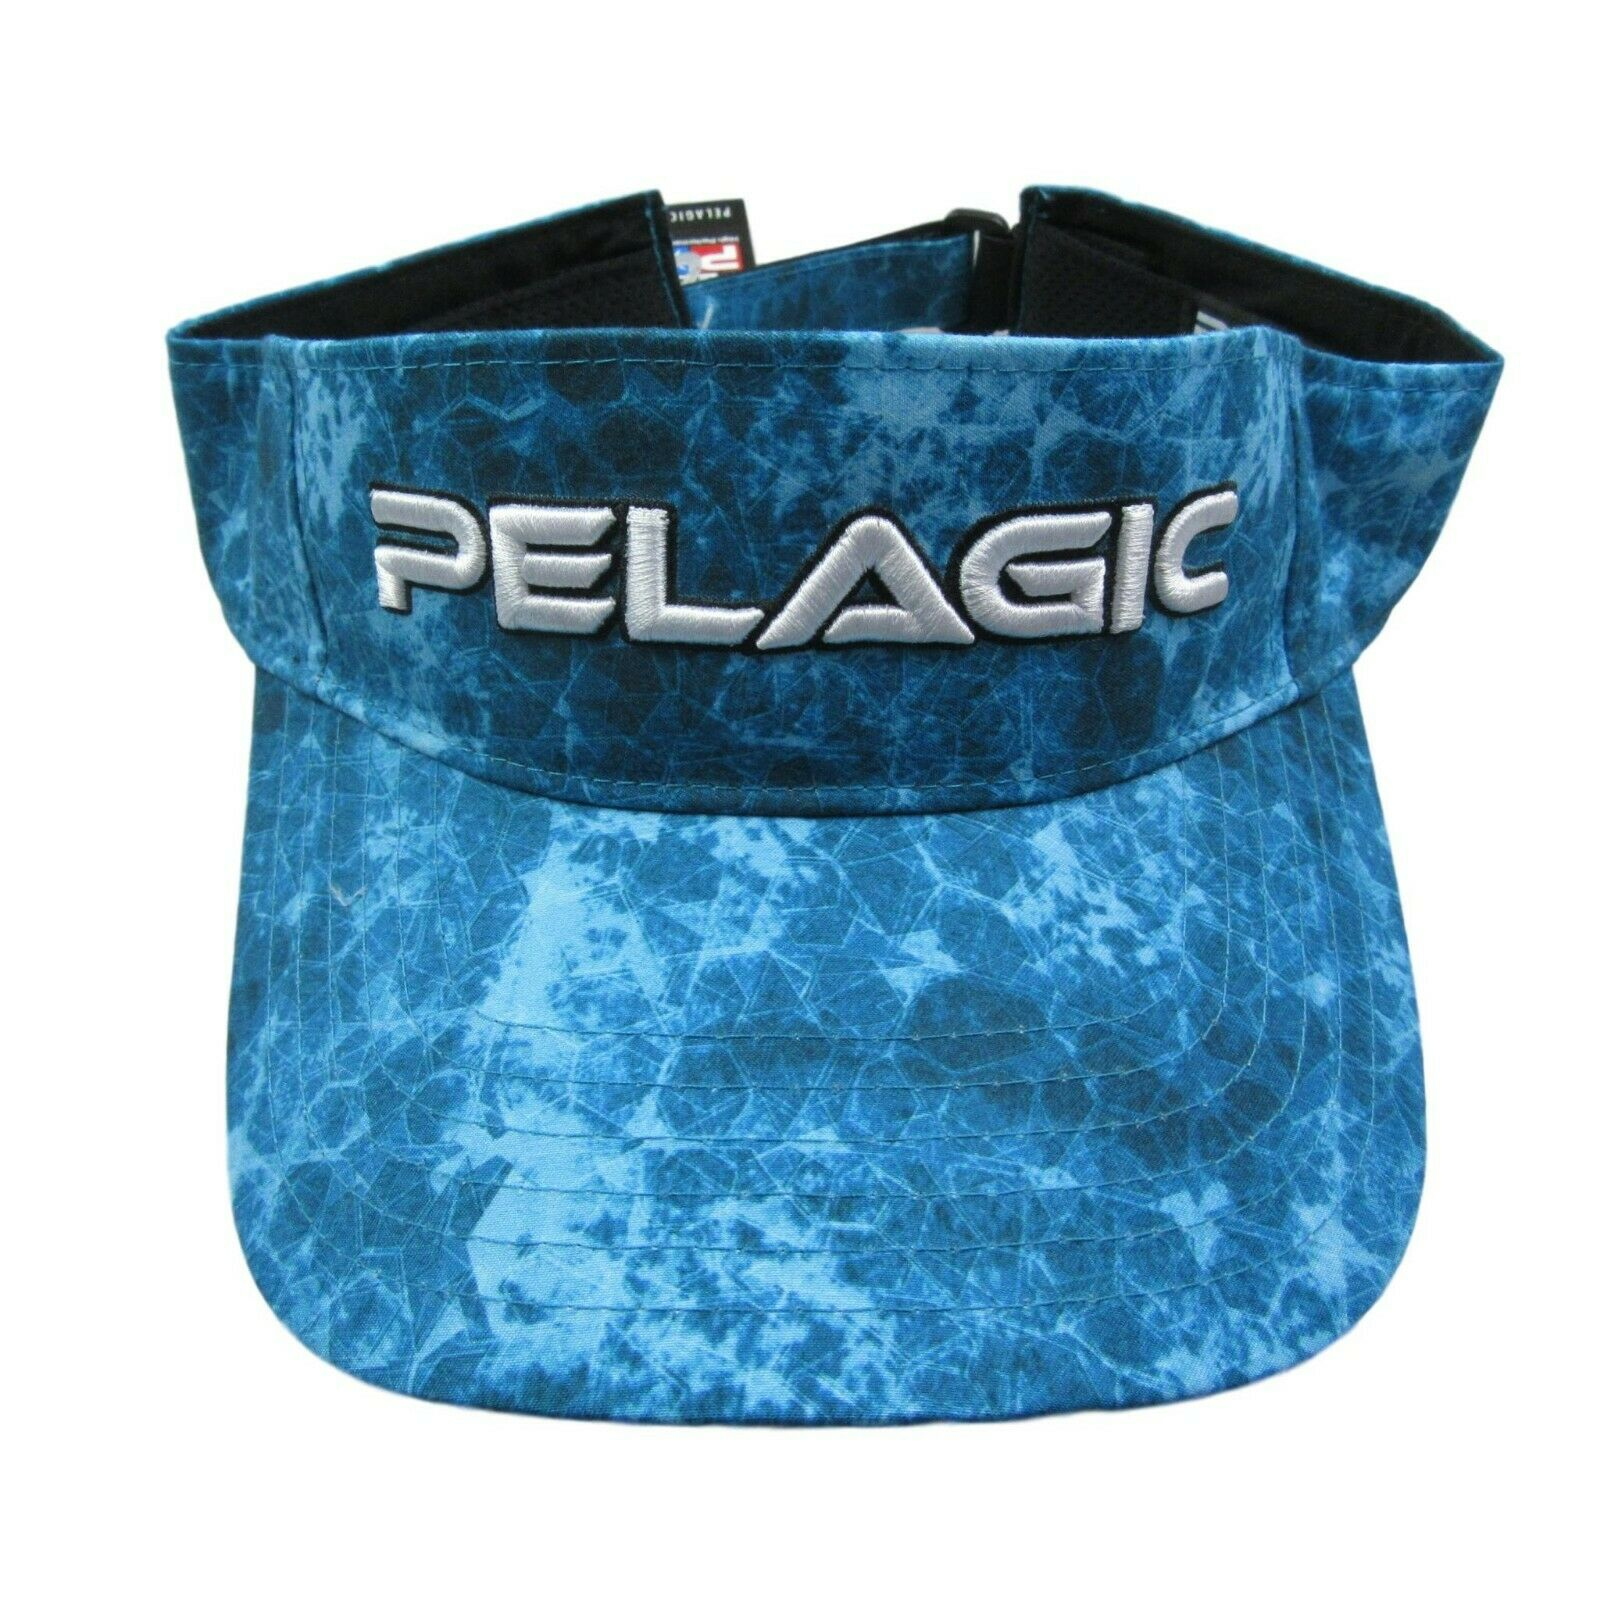 c8b55398aa950 Pelagic Visor Hat Cap Aqua Blue Offshore Fishing Adjustable One Size ...